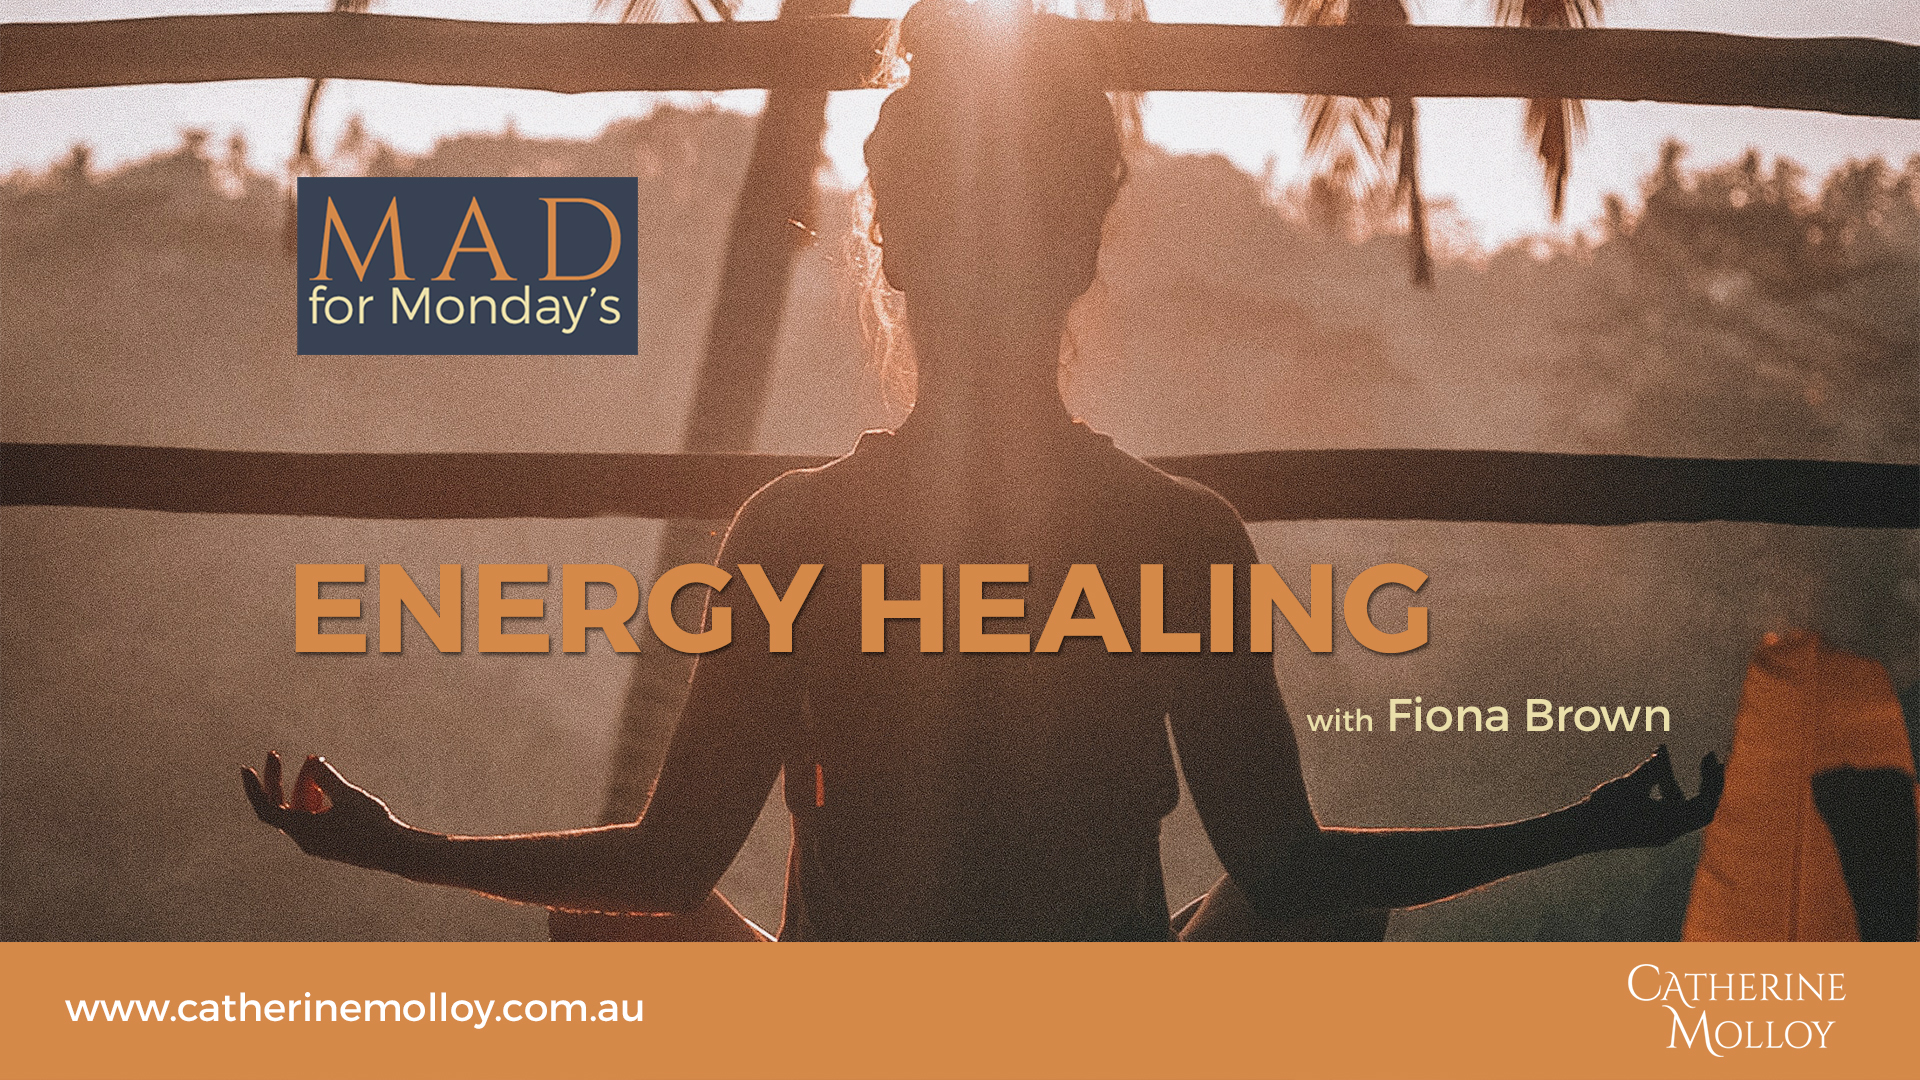 MAD for Monday's – Energy Healing